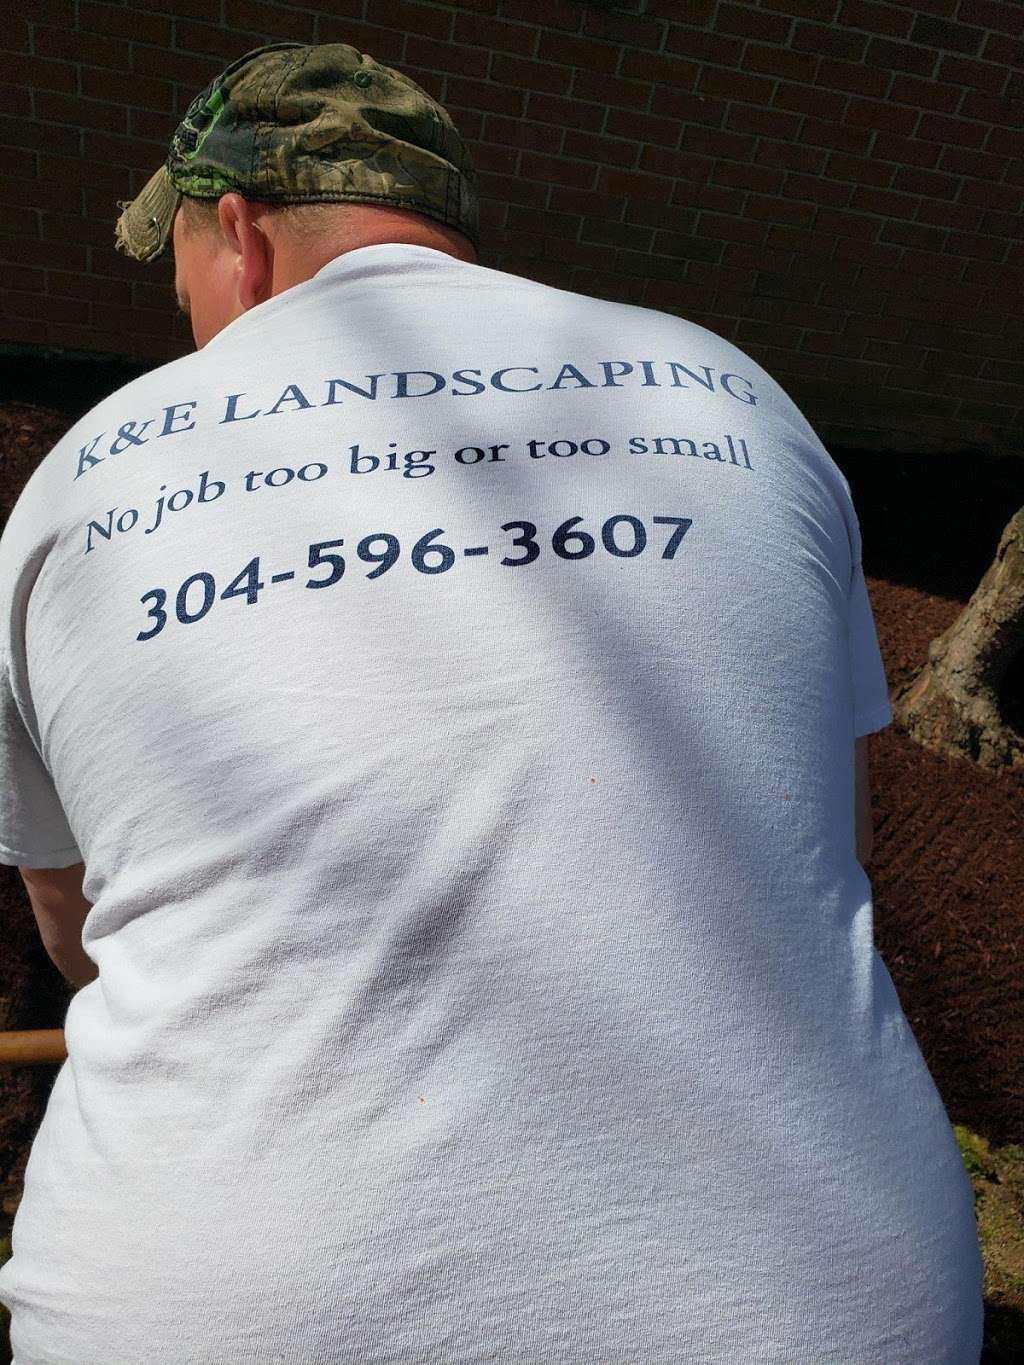 K & E Landscaping - store    Photo 3 of 3   Address: 185 Skyhawk Trail, Harpers Ferry, WV 25425, USA   Phone: (304) 596-3607